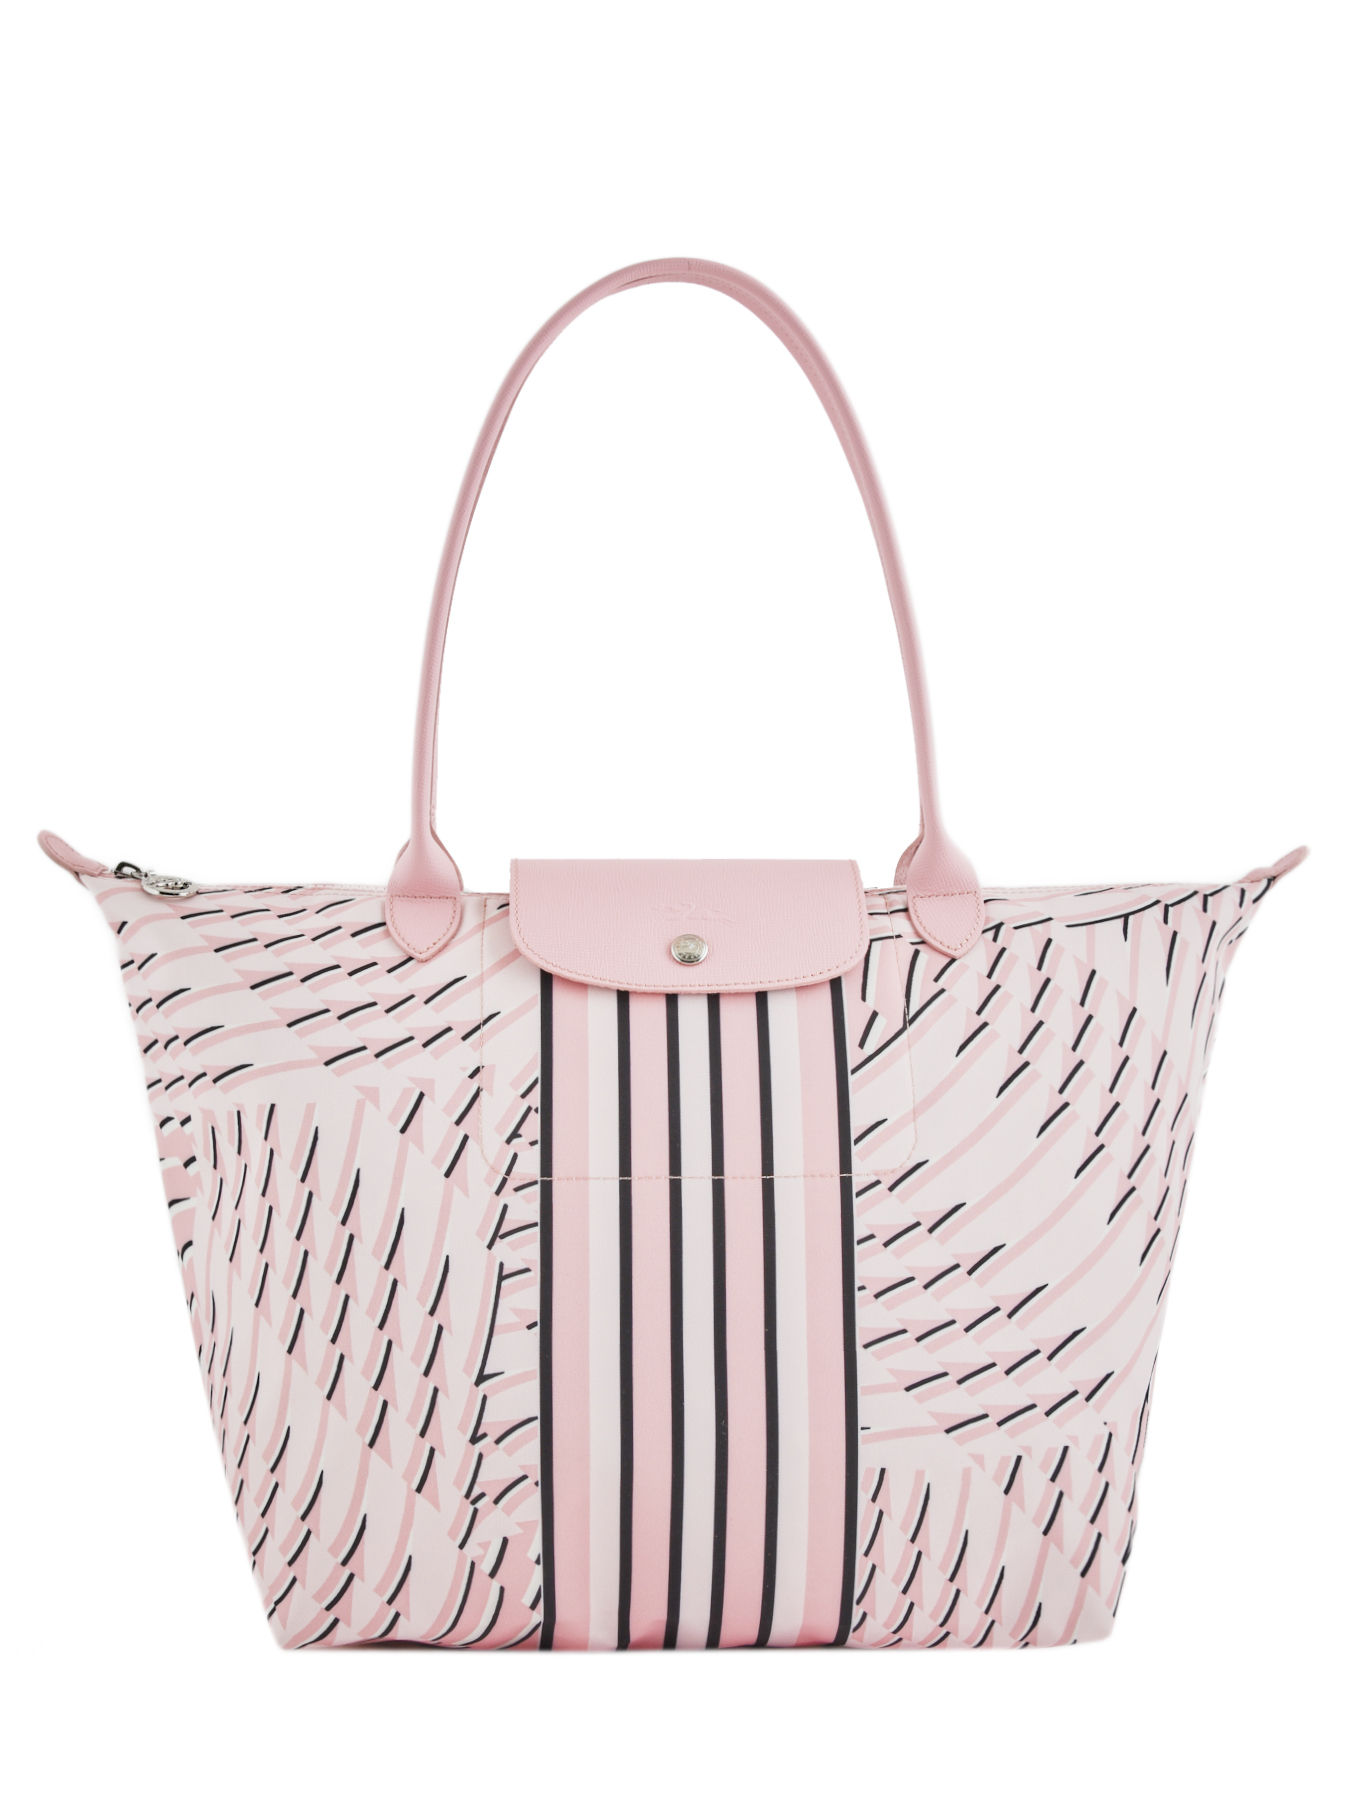 Longchamp Hobo bag Pink; Longchamp Hobo bag Pink ...